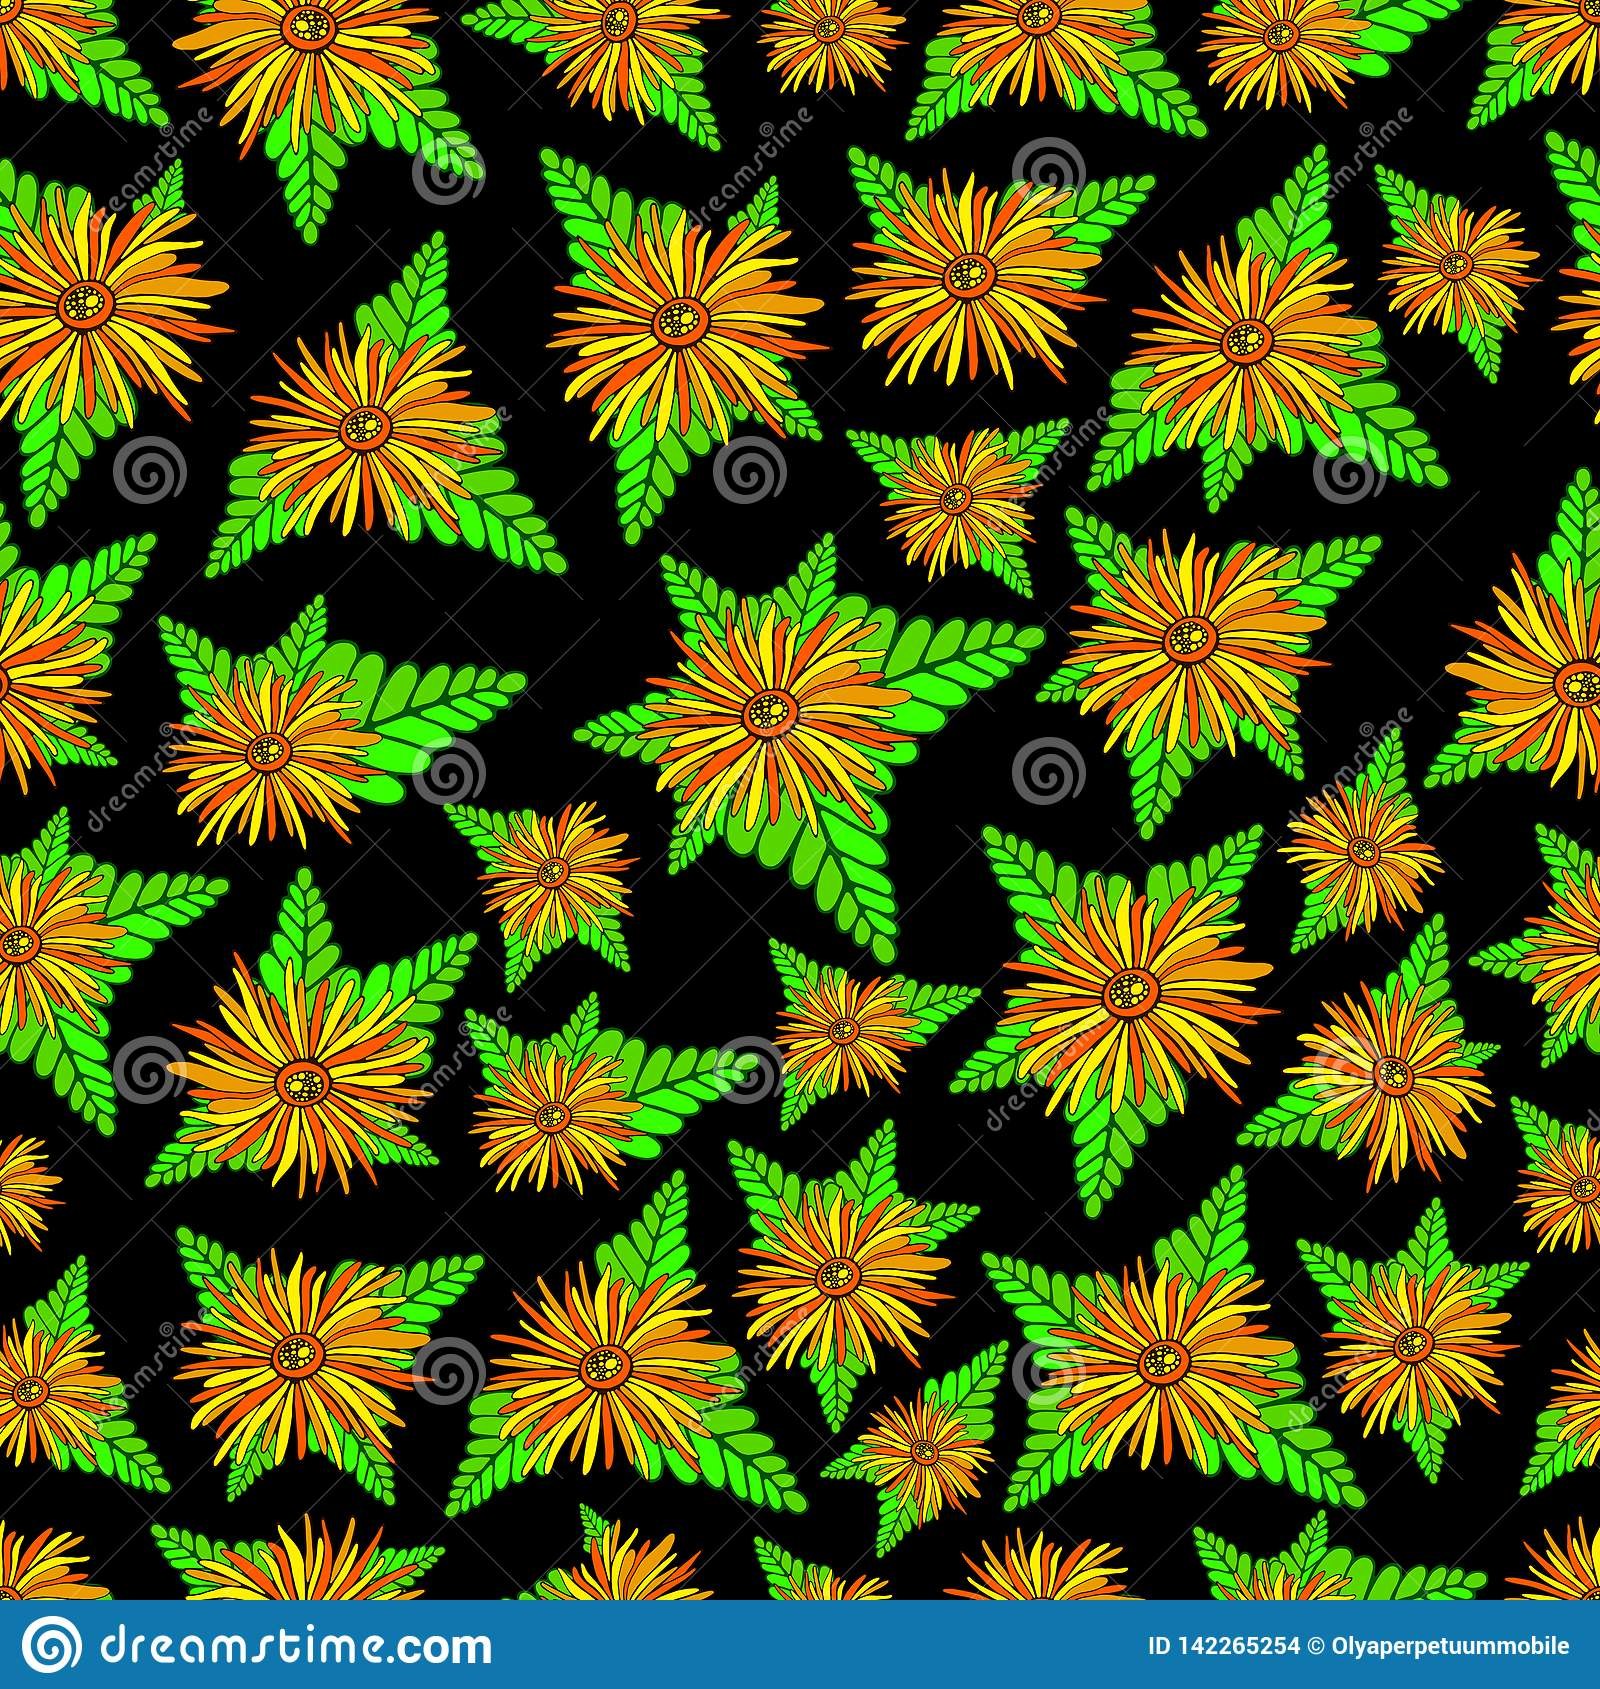 Orange flowers and plants seamless texture. Floral colorful fantasy ornament. Original vector flowers art pattern.